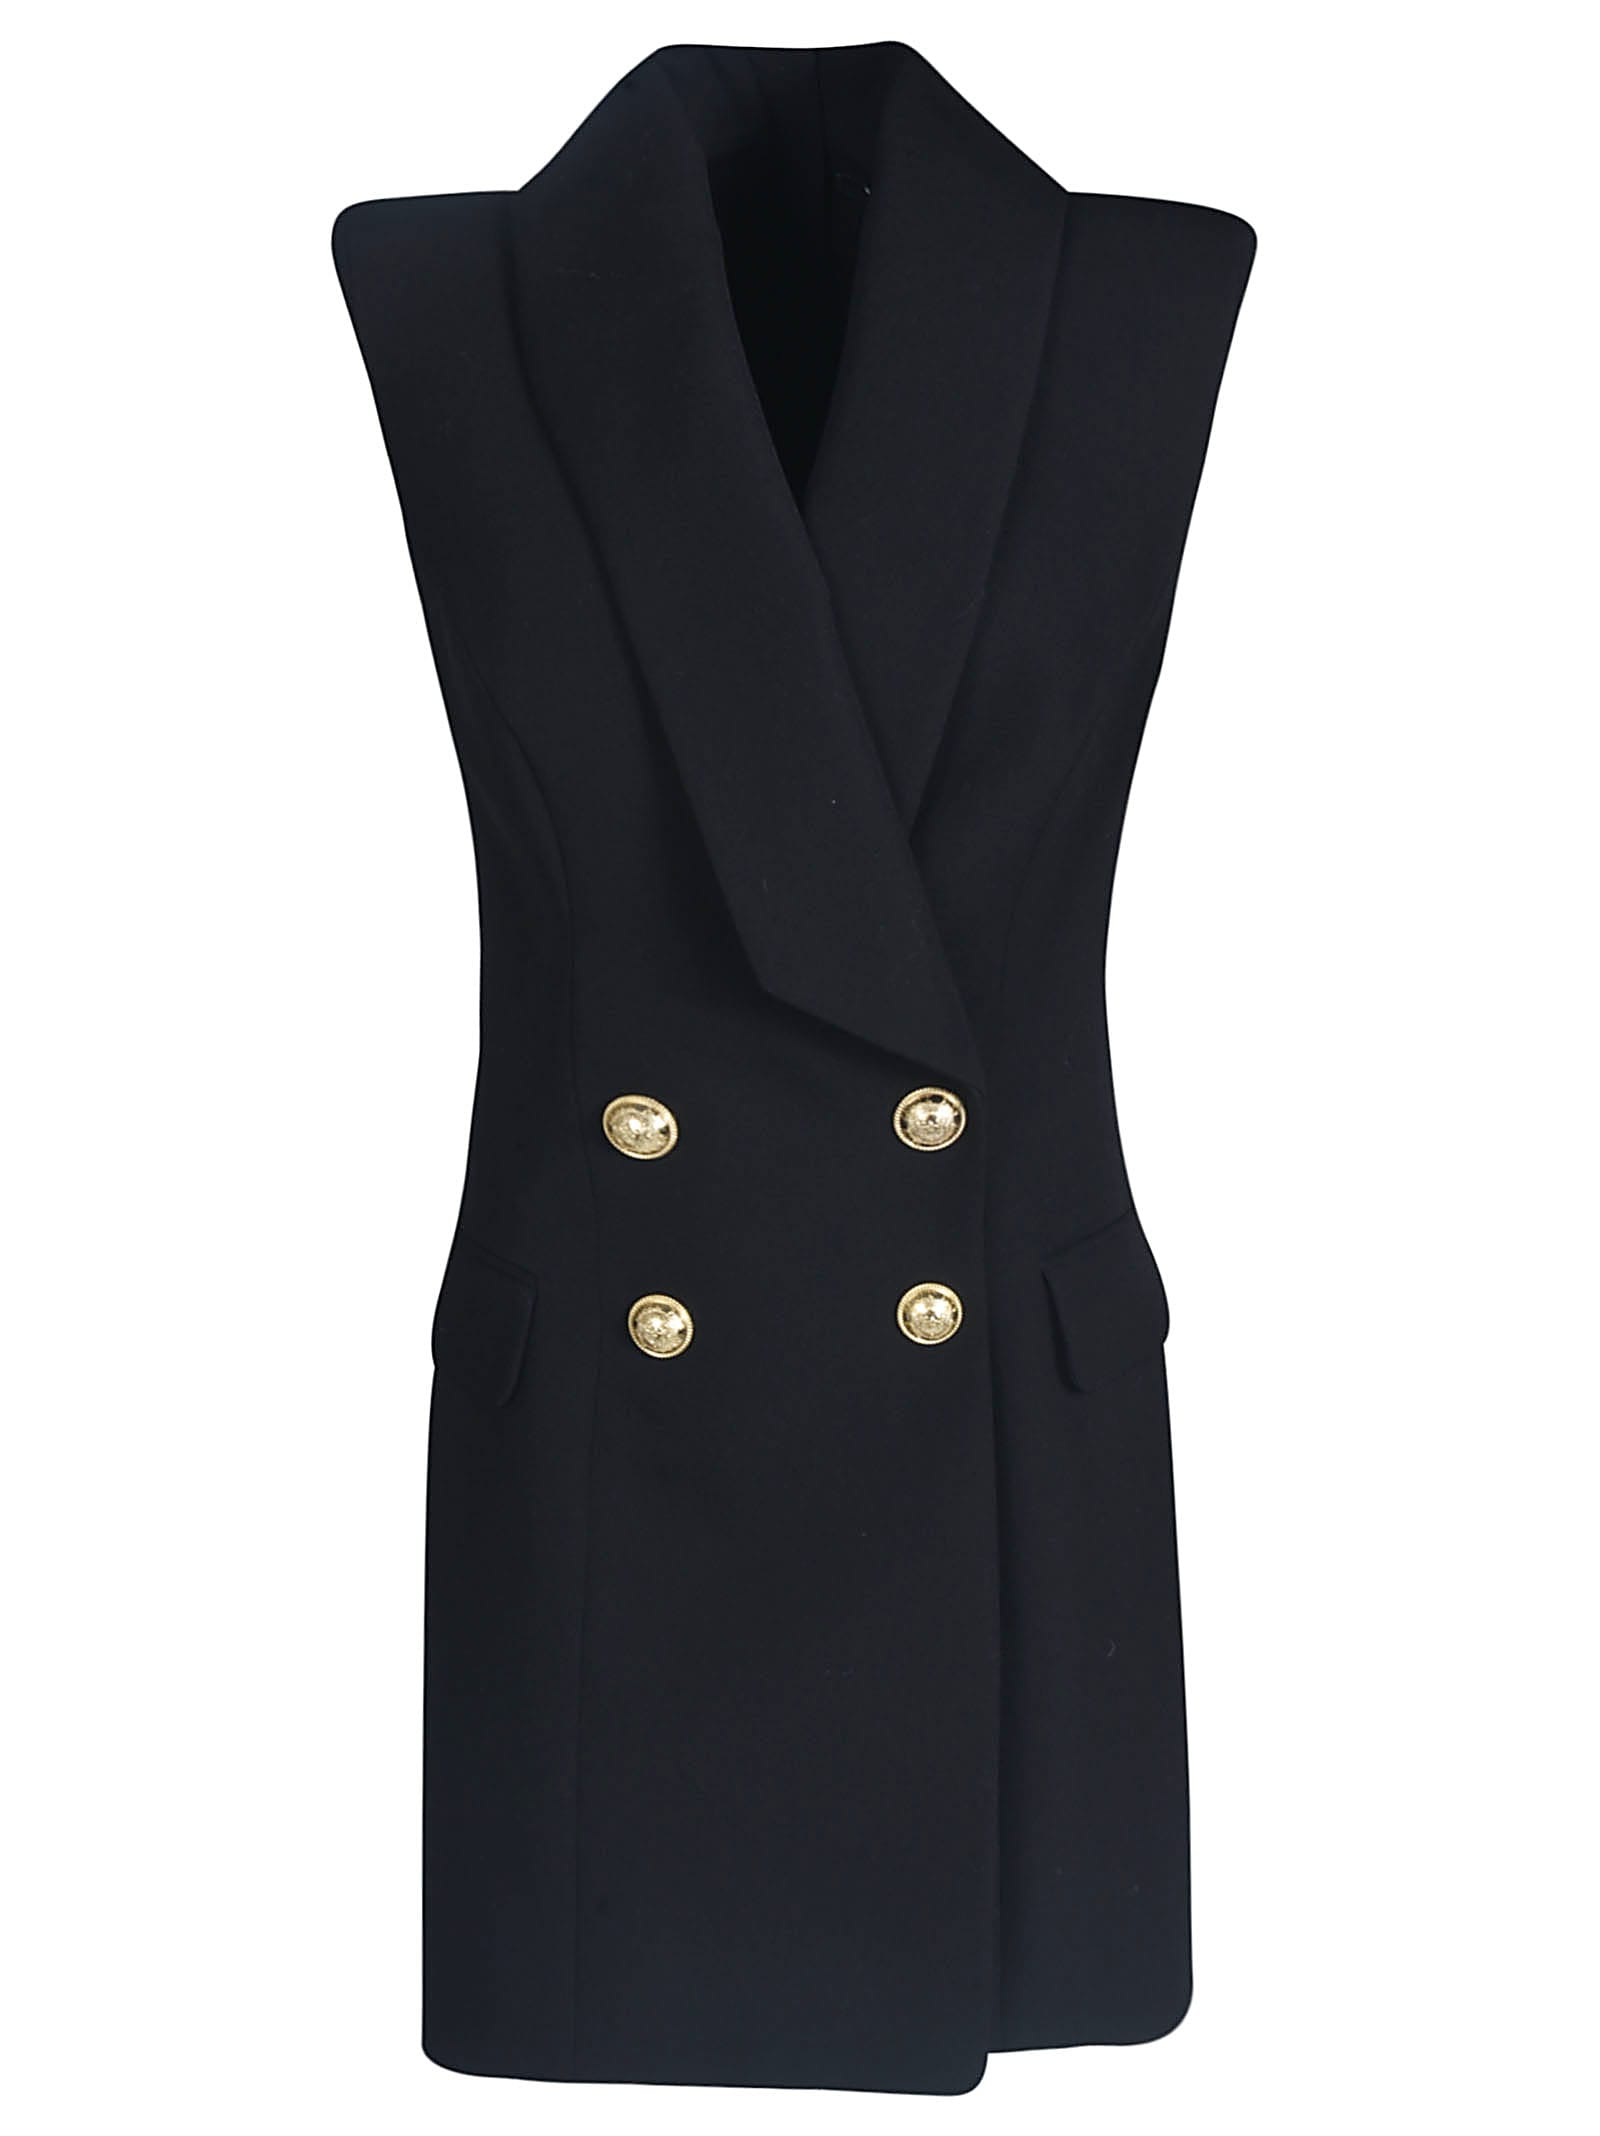 Buy Balmain Double-breasted Rear Zip Blazer Dress online, shop Balmain with free shipping